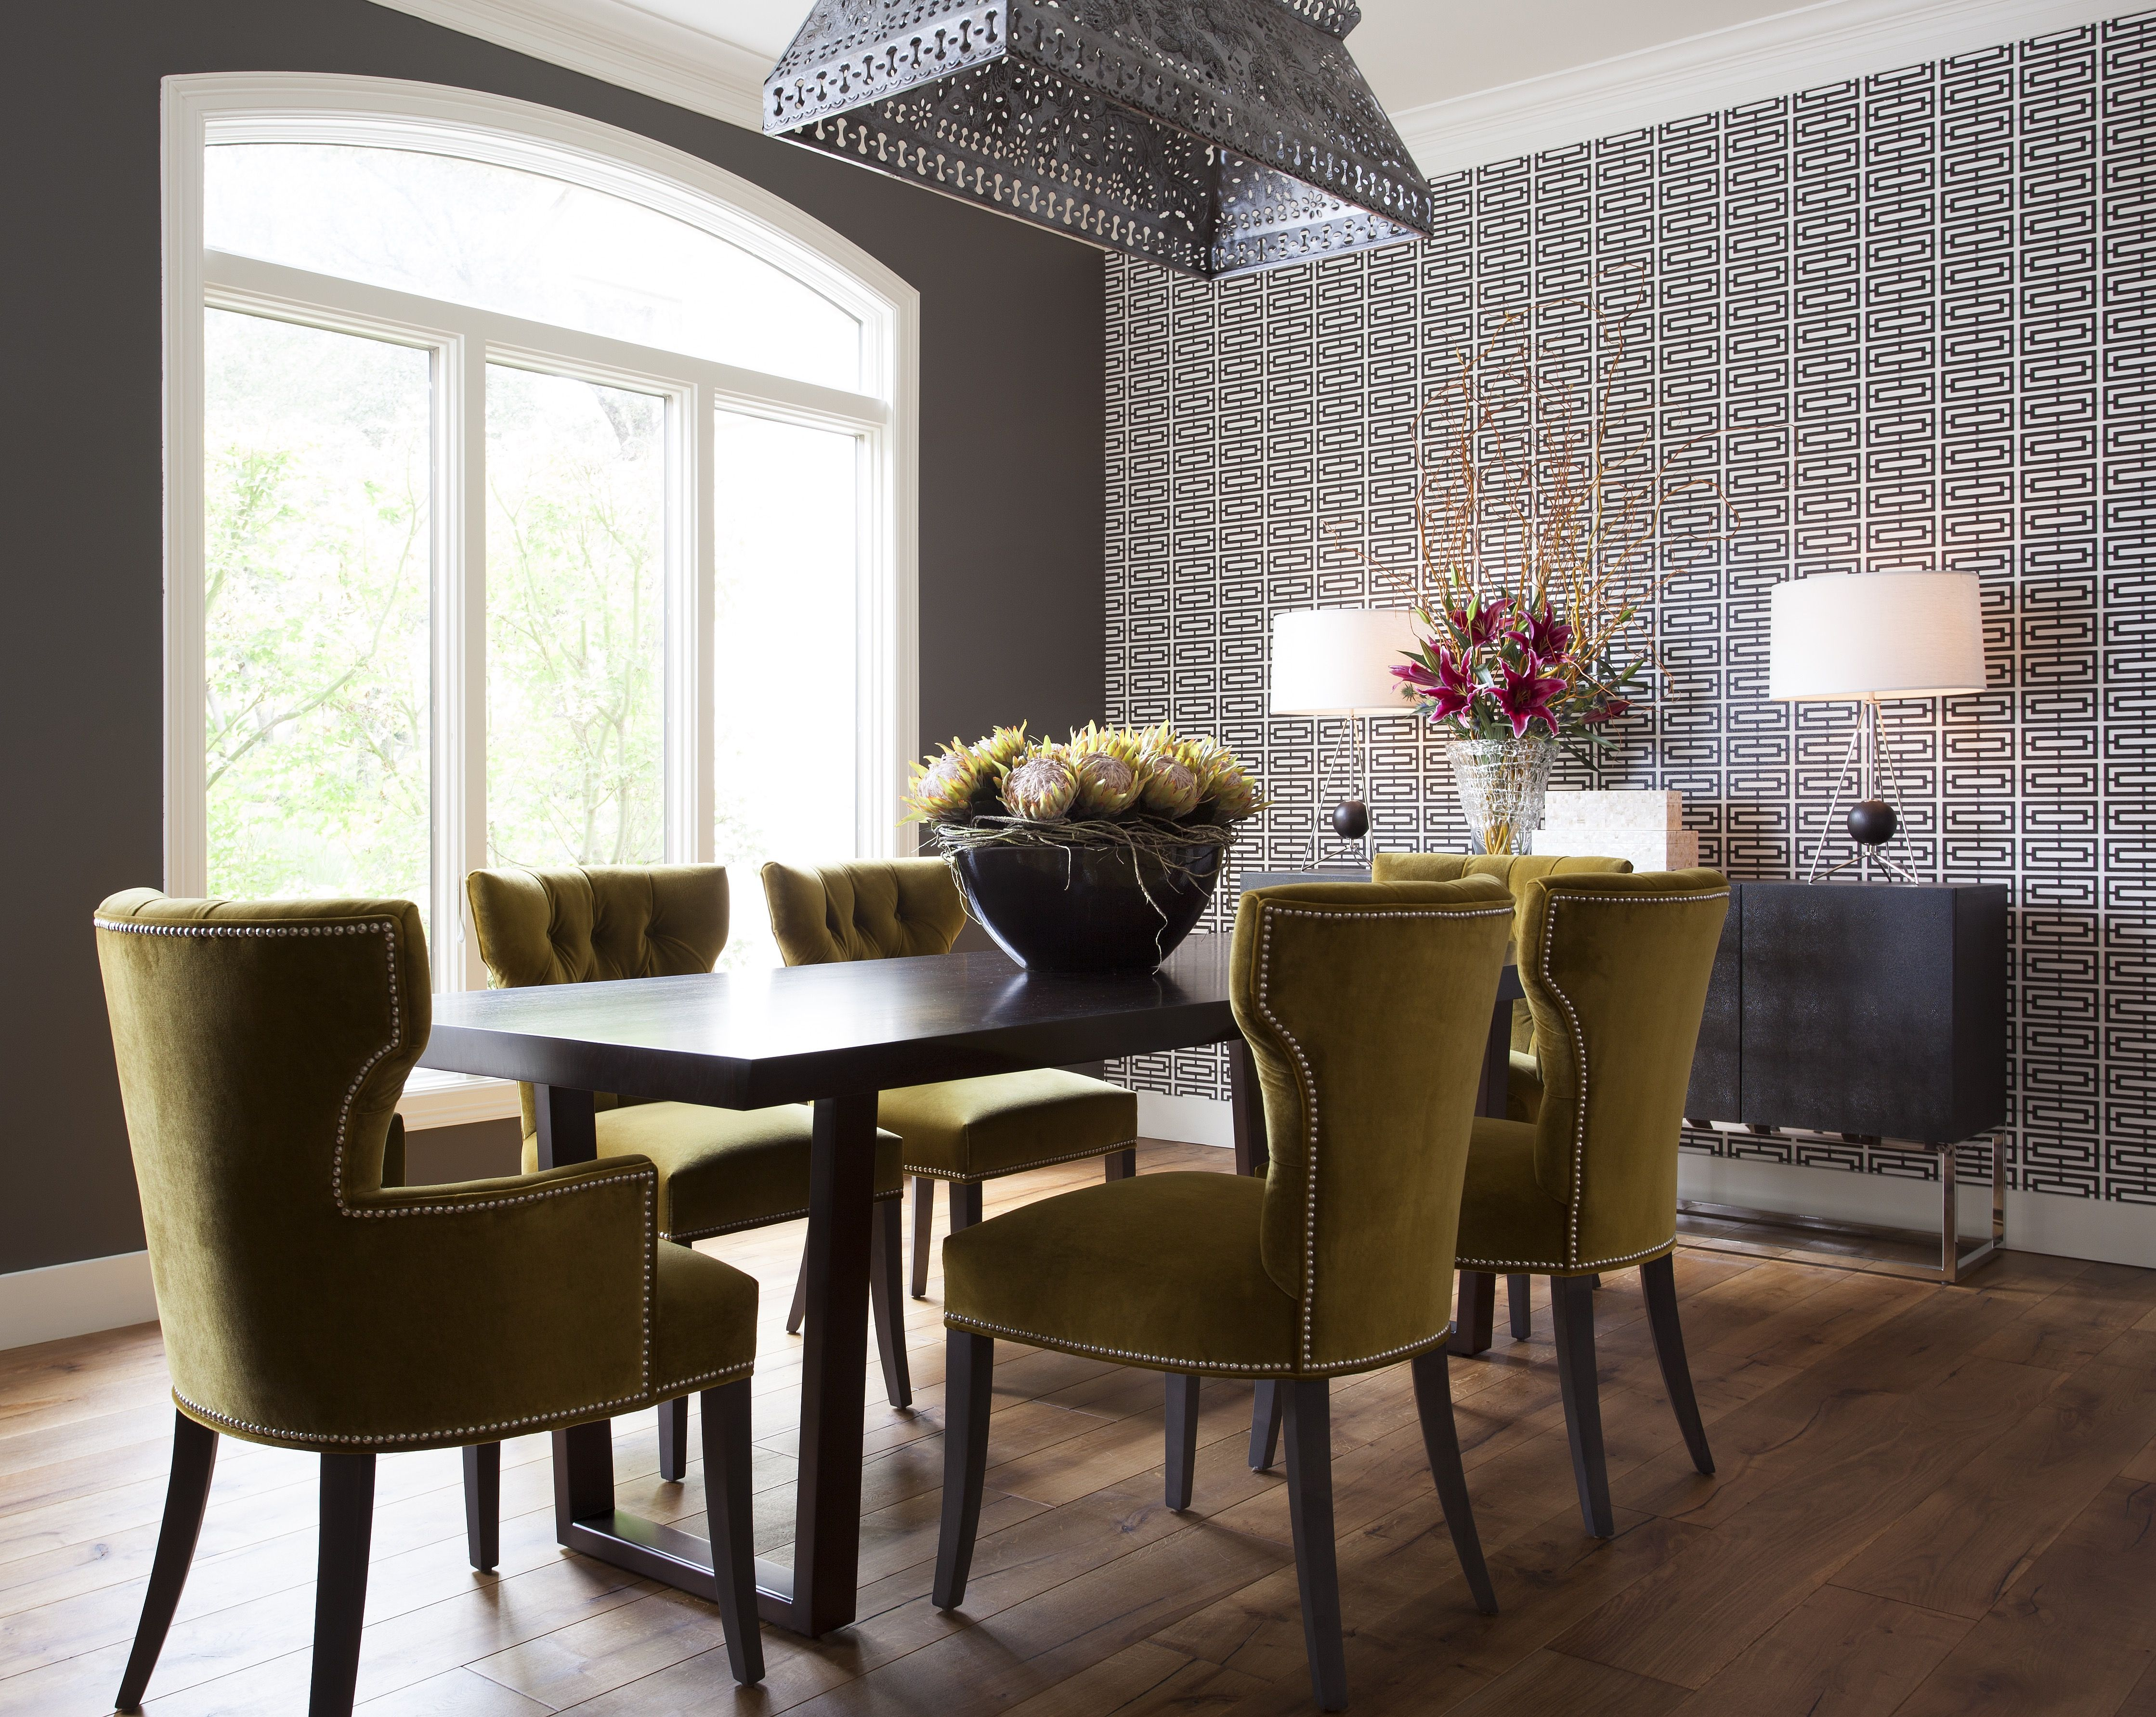 Ariel dining chairs and Kimora dining table available in 3